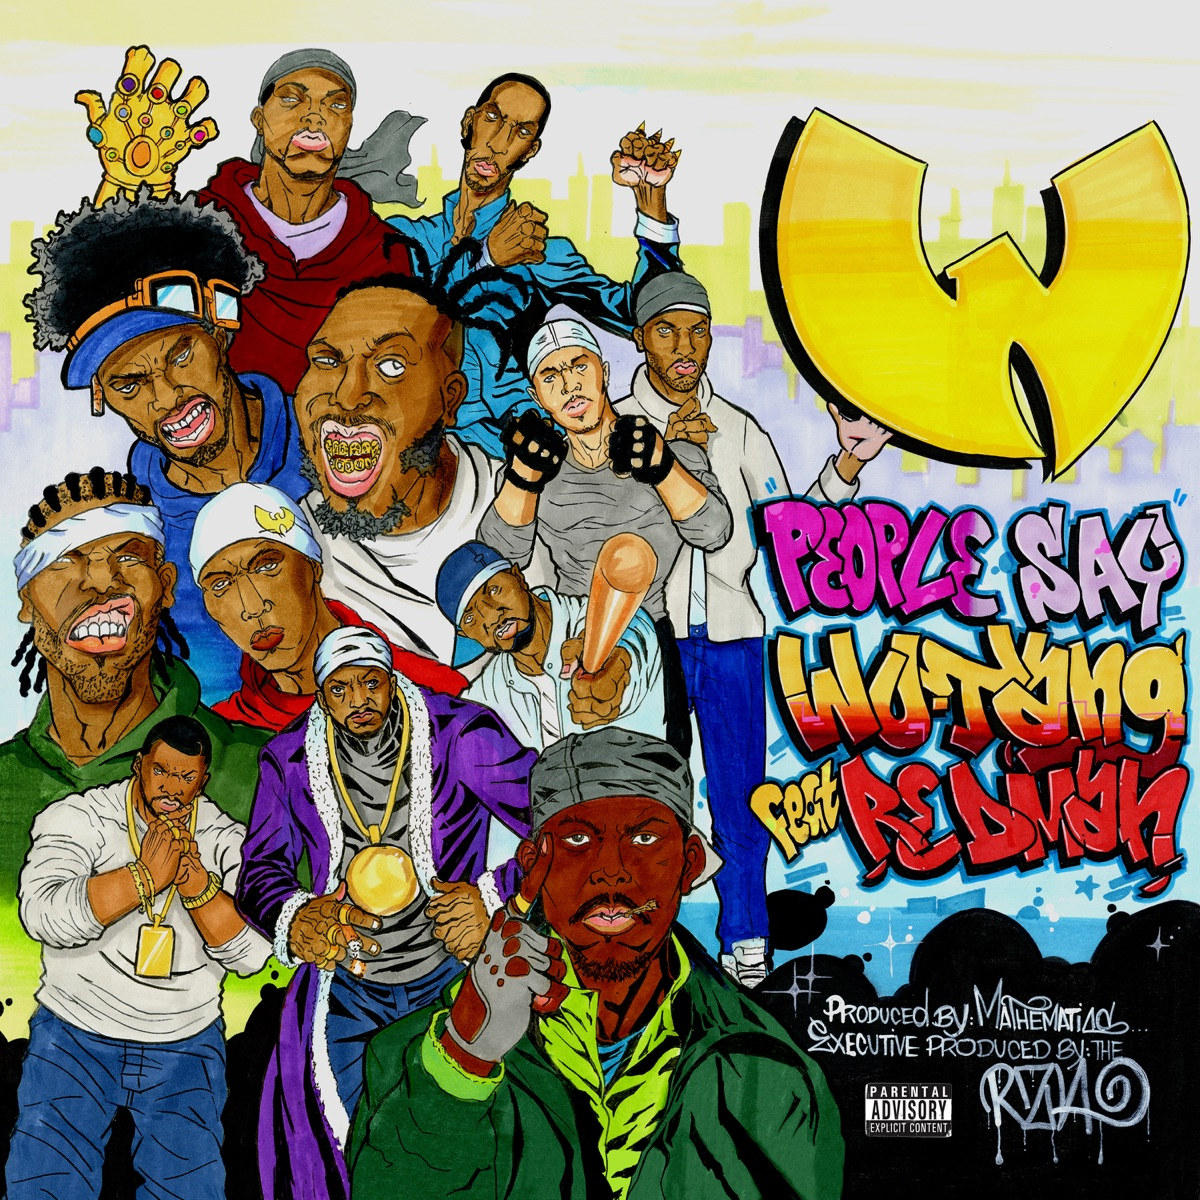 People Say Album Cover by Wu-Tang Clan